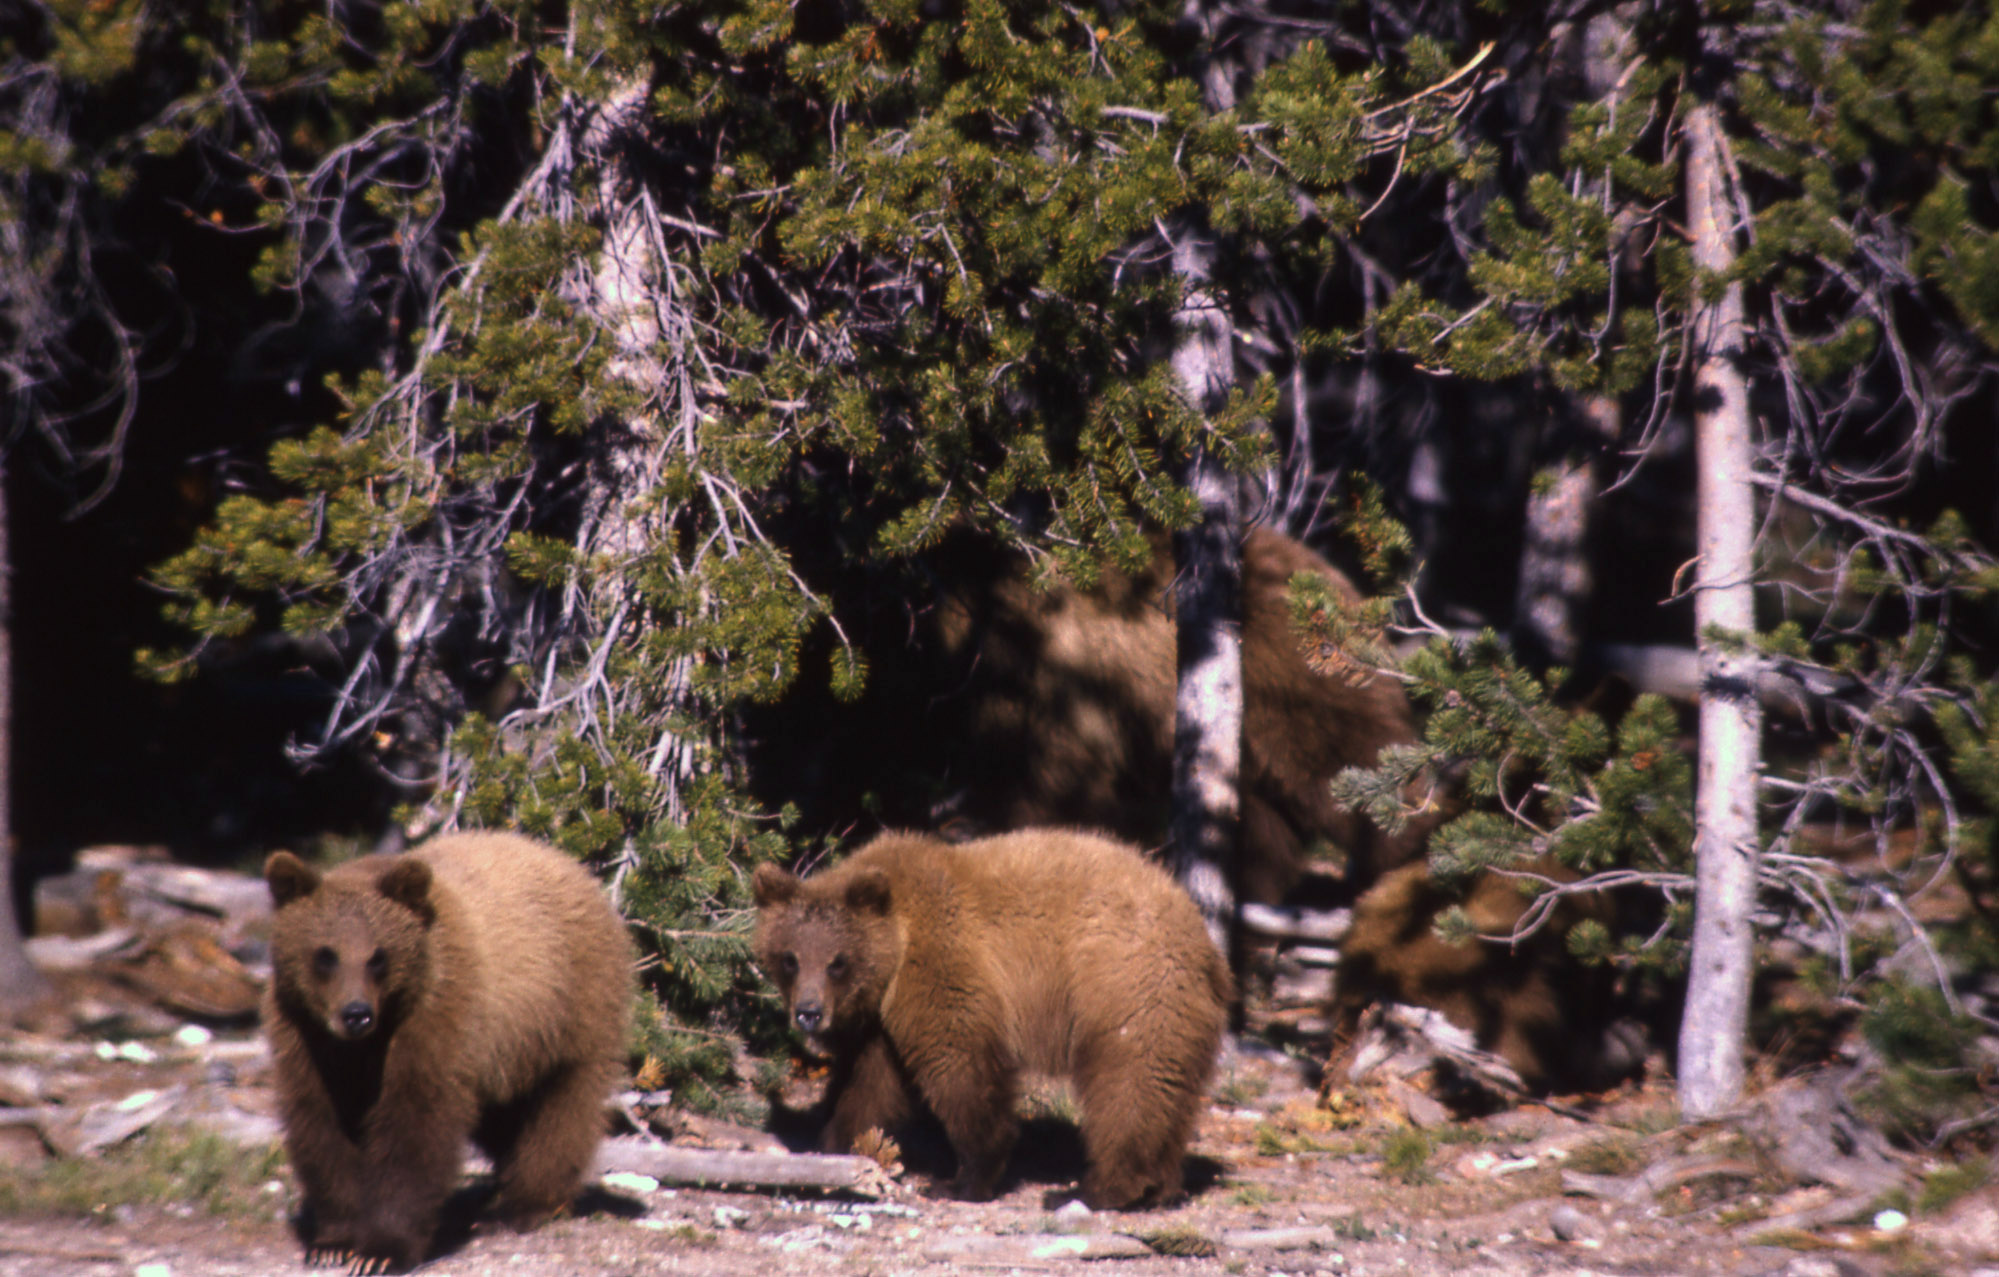 Tribes in Montana and Wyoming oppose delisting of grizzly bear